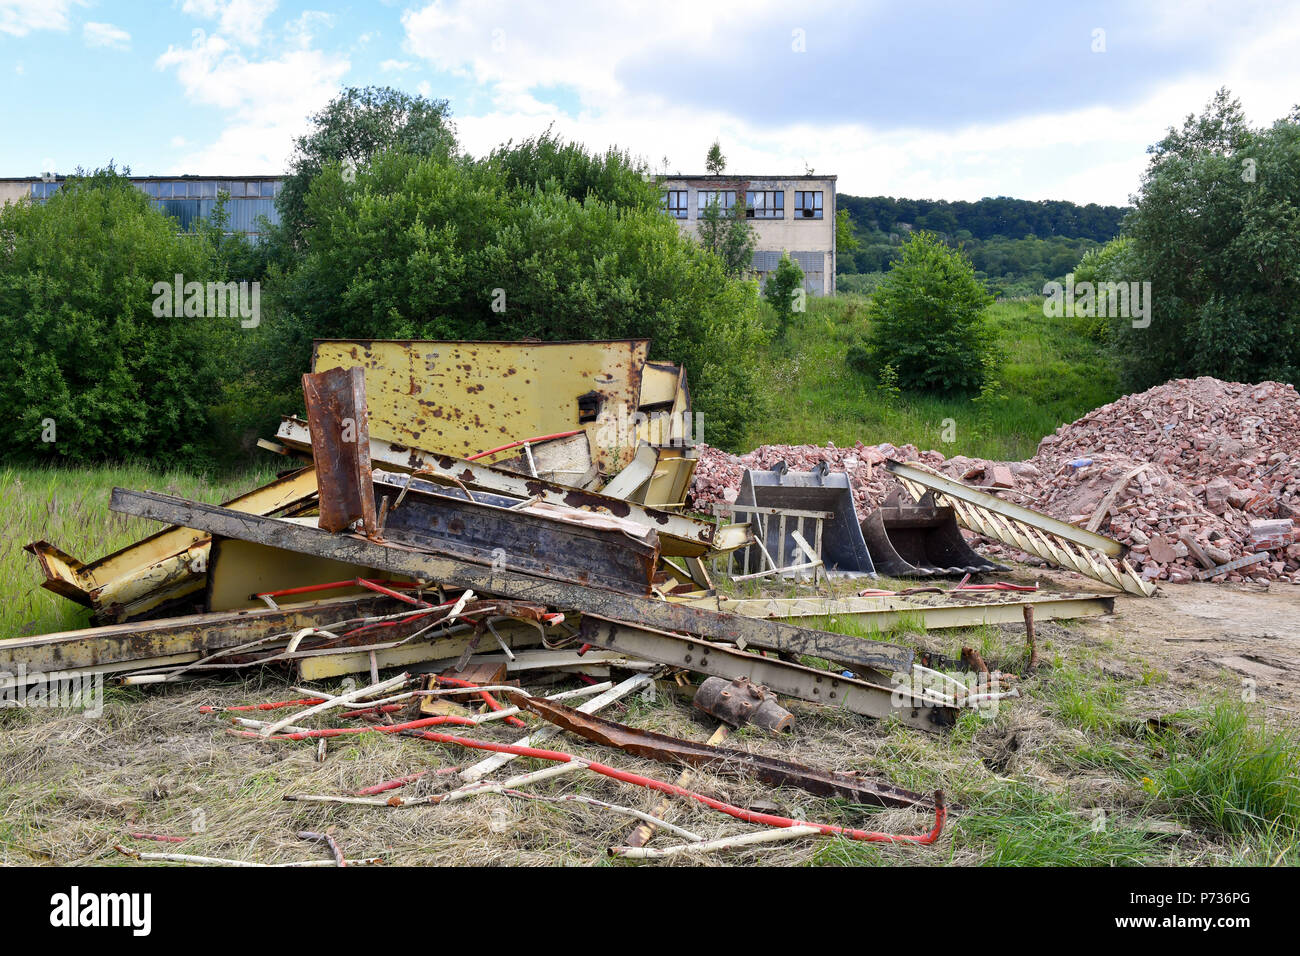 27.06.2018, Bischofferode, Thuringen: Remains of the Demand Tower from the potash plant Bischofferode are located on the former company premises. Protests of the miners at the close of the early 1990s made the work known nationwide. (to dpa 'hunger strike! - Search for clues 25 years after the Kali rebellion' from 28.06.2018) Photo: Jens Kalaene / dpa central image / dpa | usage worldwide - Stock Image